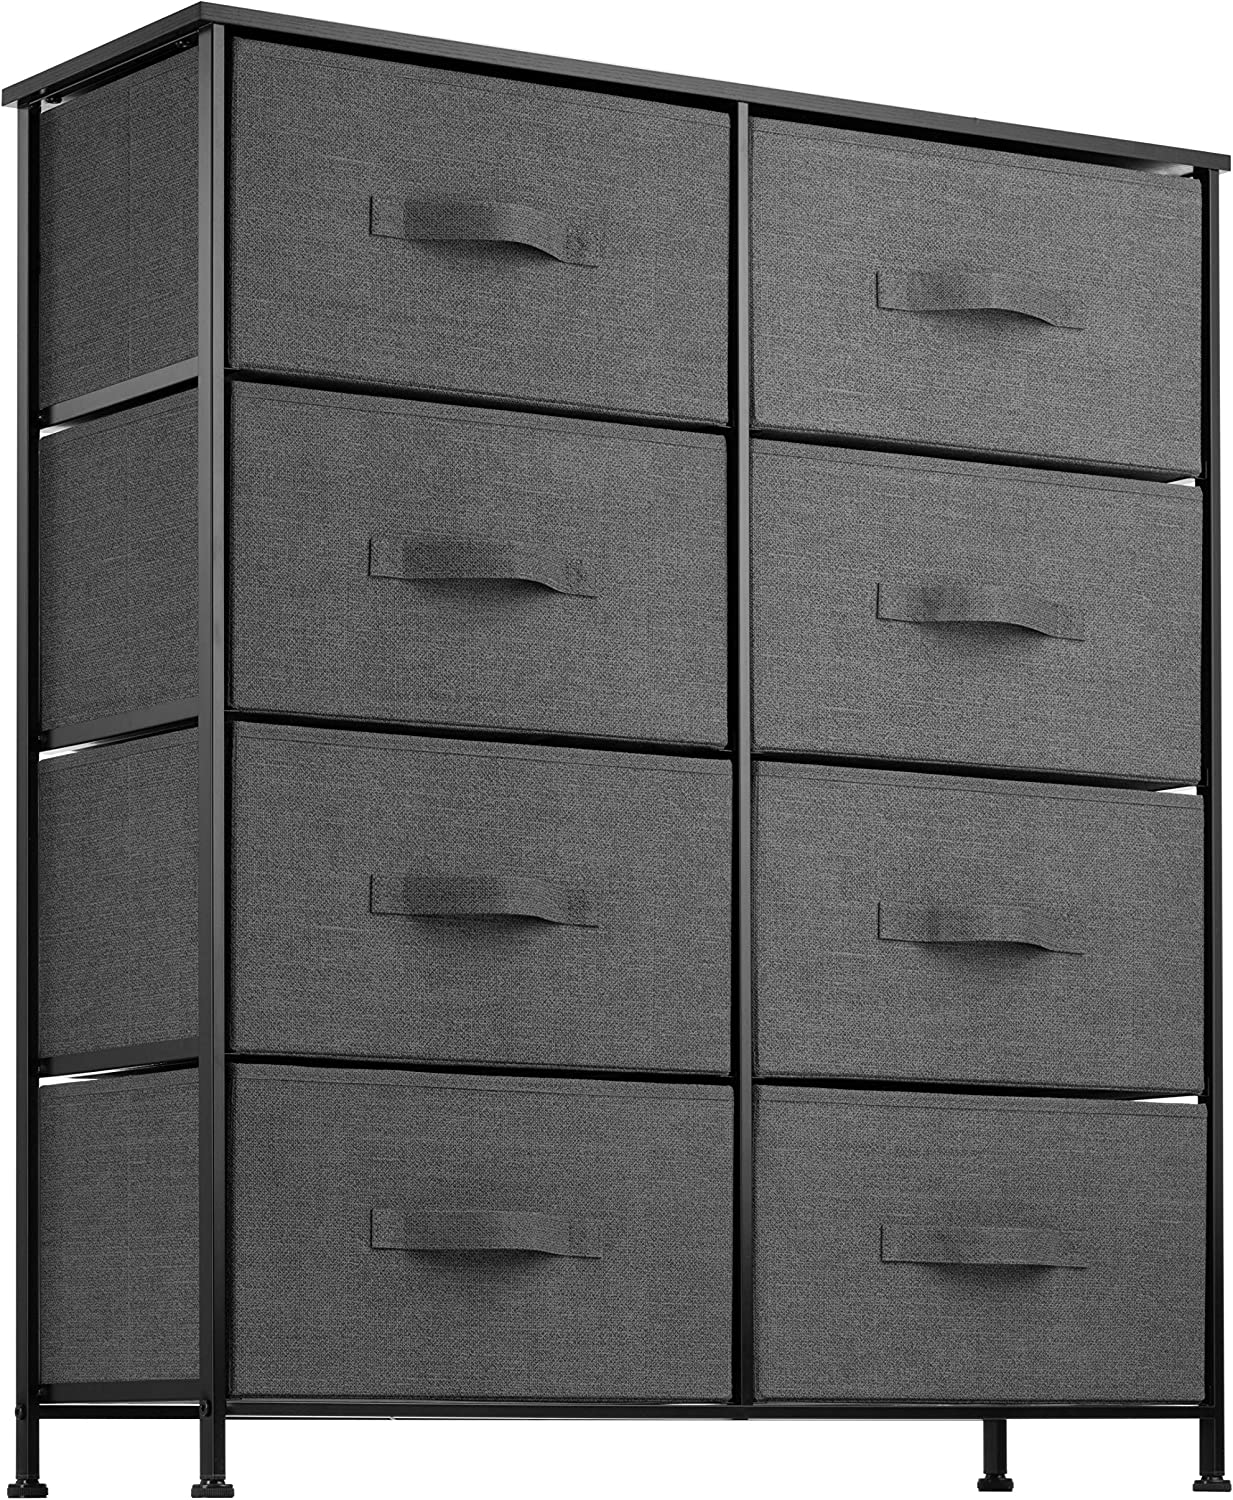 8 Drawer Dresser Organizer Gorgeous Fabric for Bedroom Storage Chest Online limited product Hal